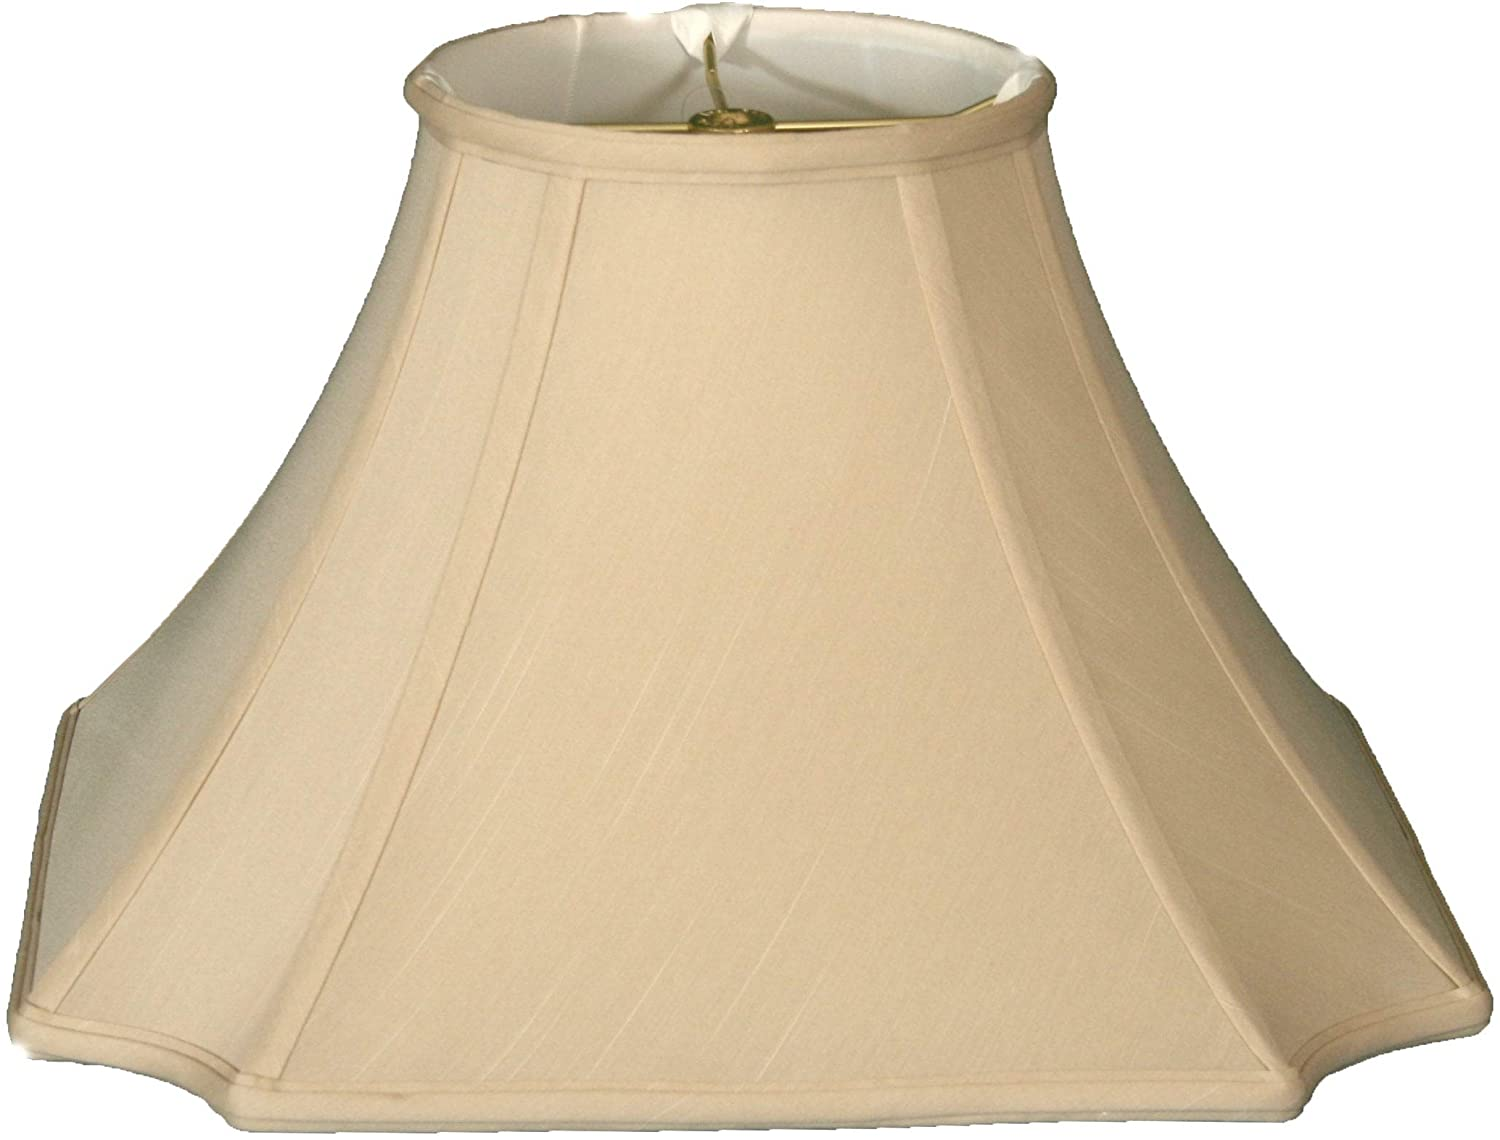 Square Inverted Cut Corner Basic Lamp Shade Beige 6 5 X 13 5 10 5 Traditional